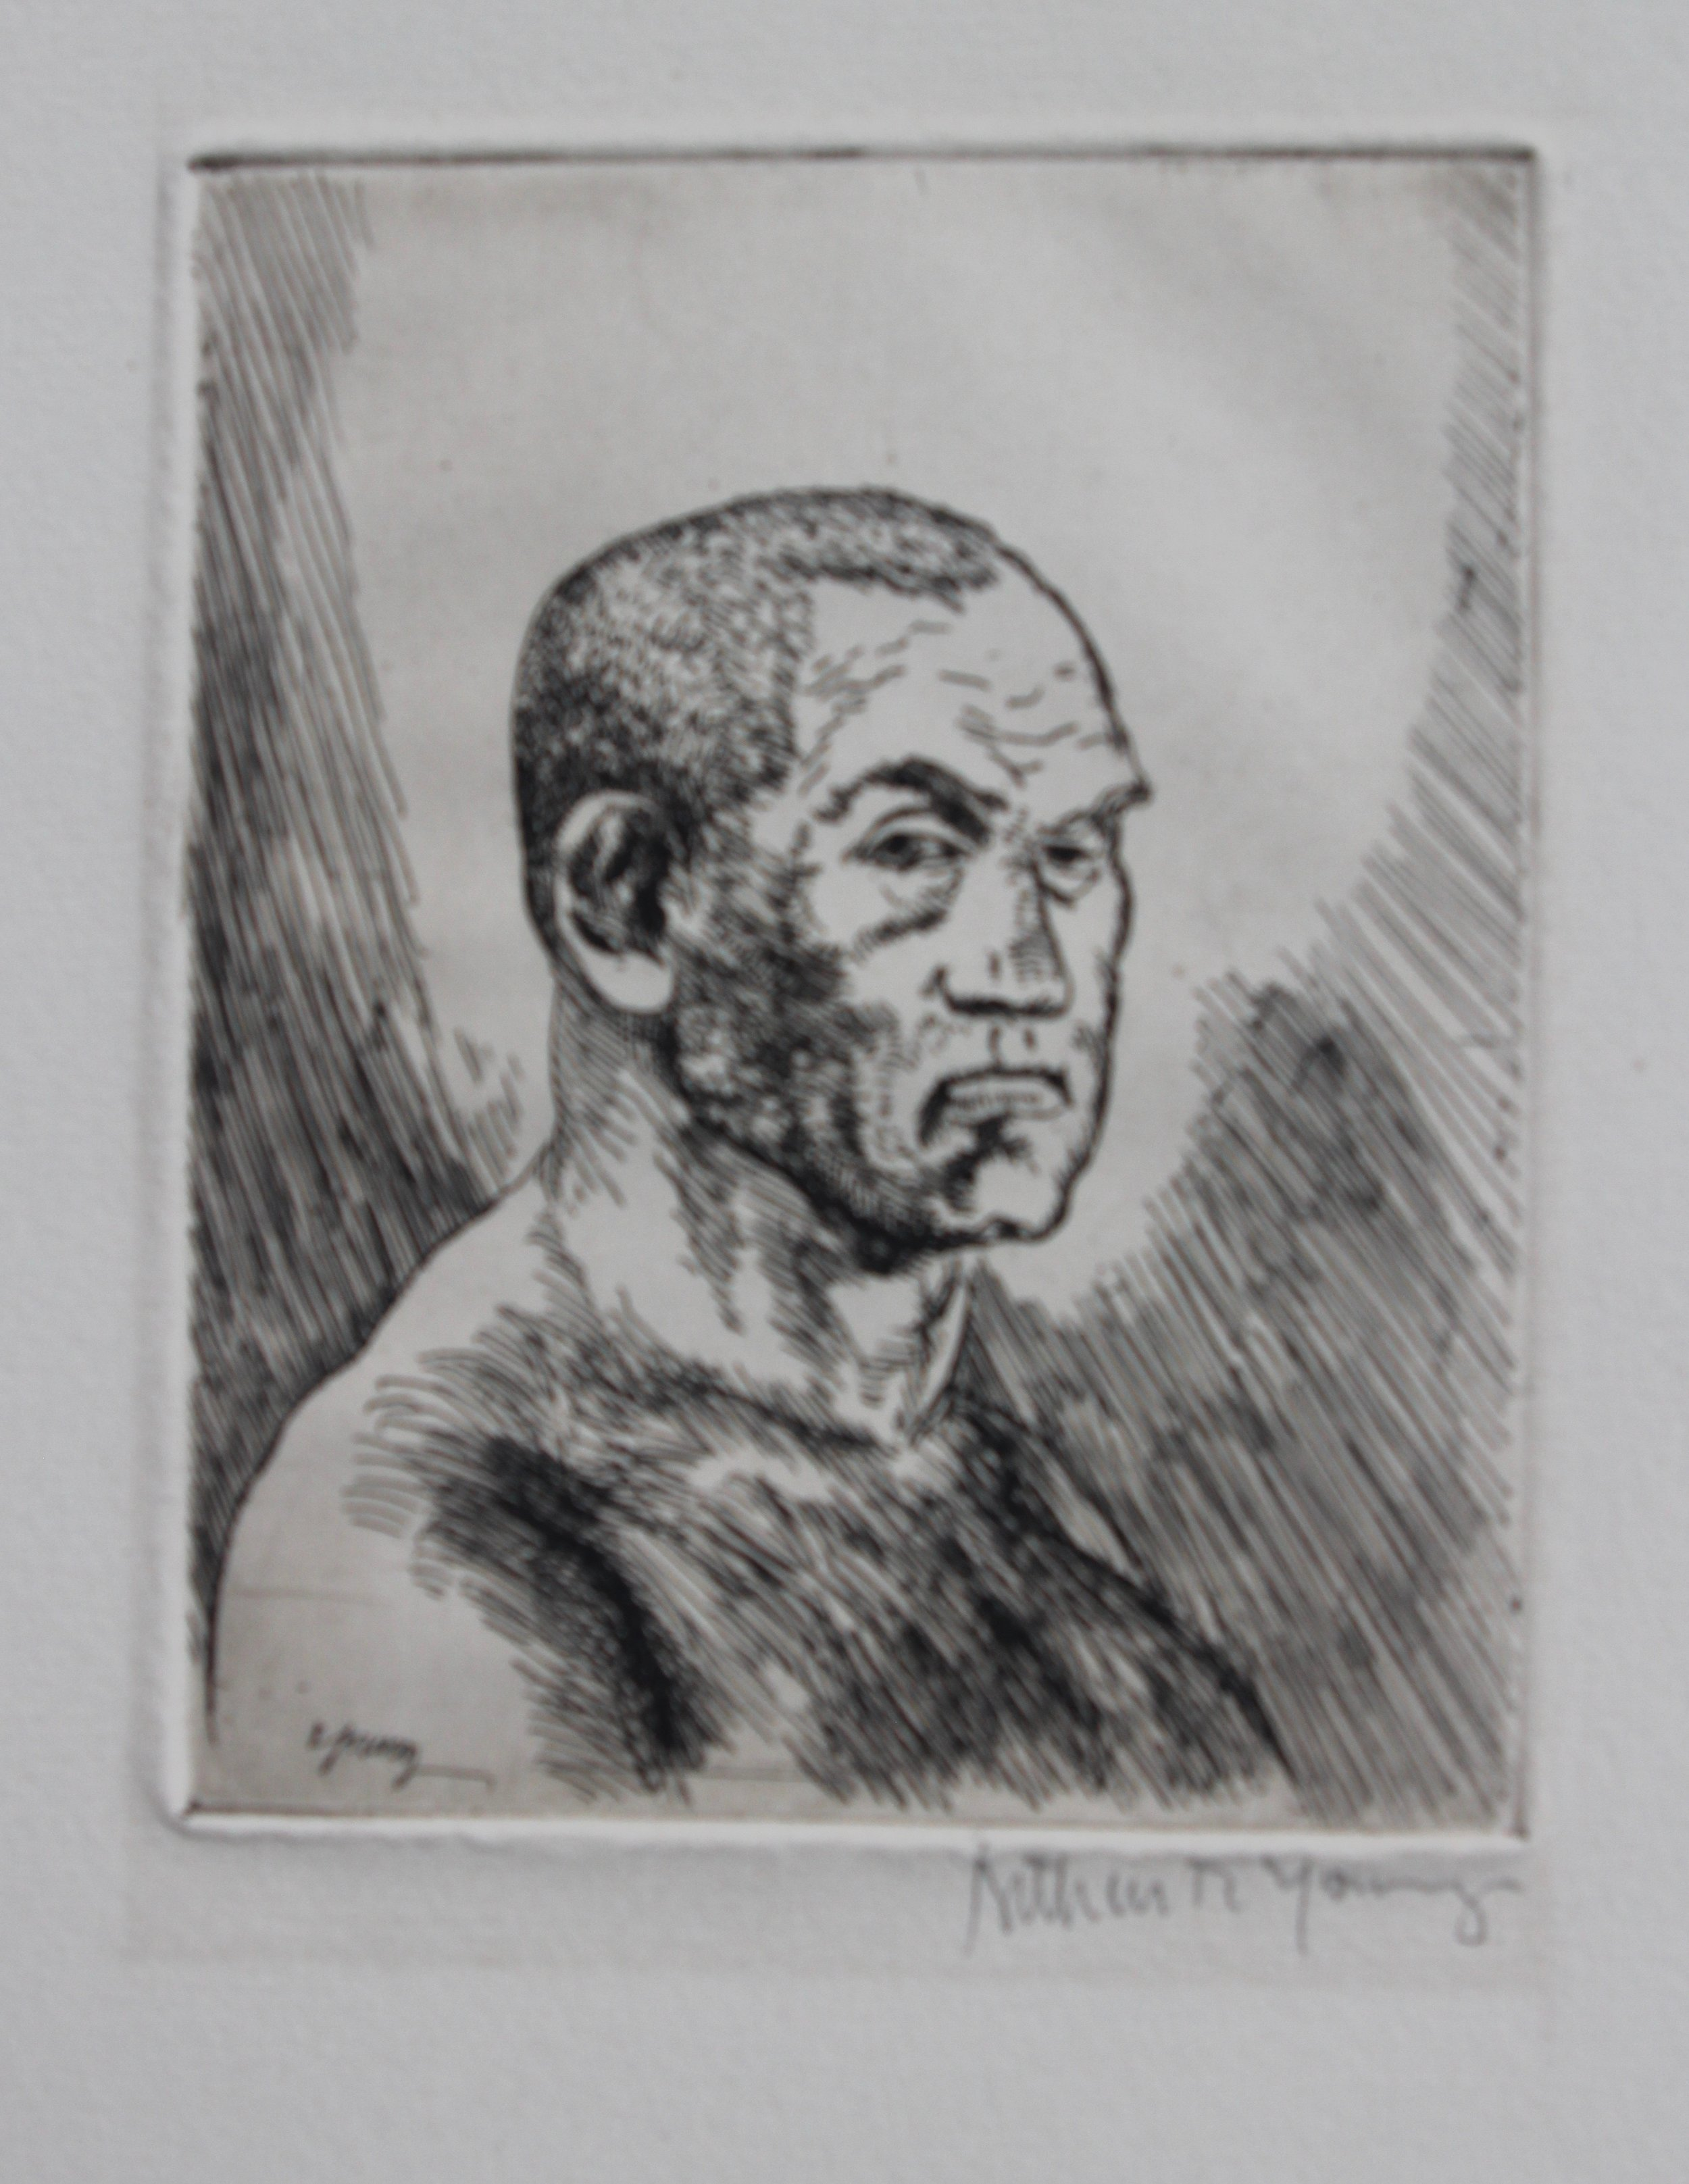 Arthur R. Young, Untitled (boxer), c. 1920